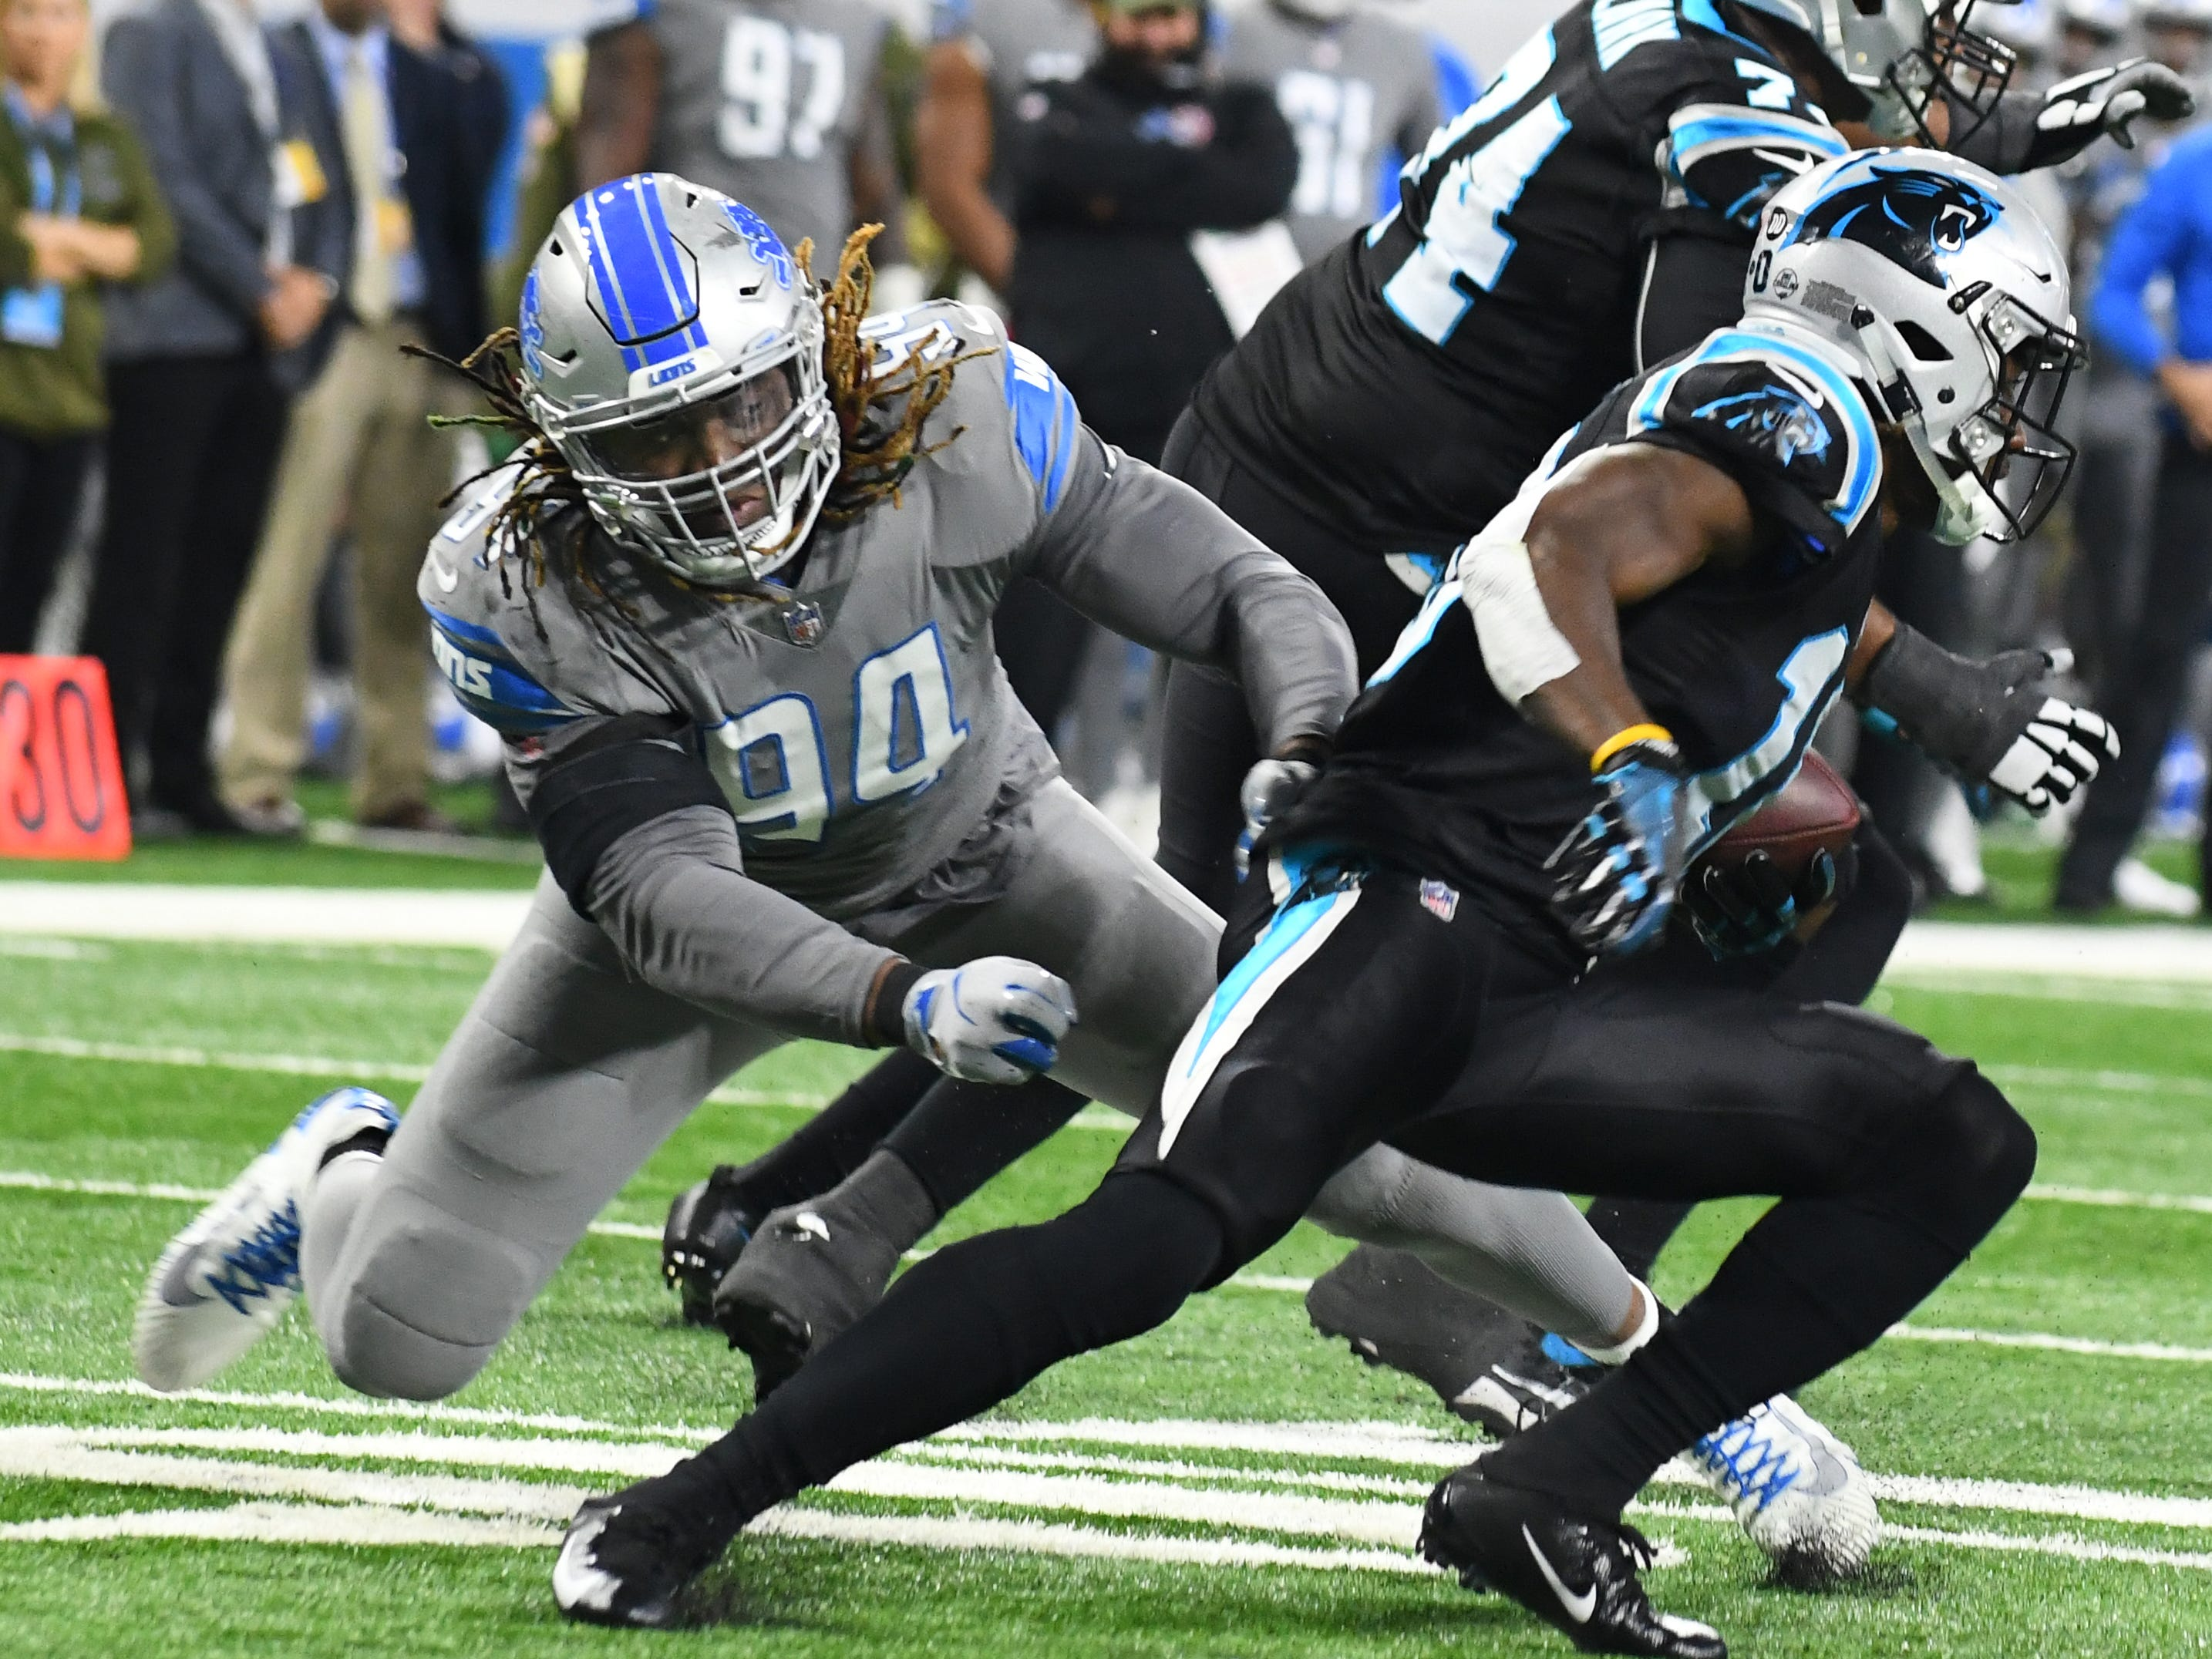 Ziggy Ansah, DE, Detroit: No introduction is needed. The Lions know what Ansah can do when healthy, but he's rarely been healthy the past three years. He produced pressure at an elite rate in 2018, but played fewer than 200 snaps because of a shoulder injury. Only way to justify bringing him back is on an incentive-laden deal.